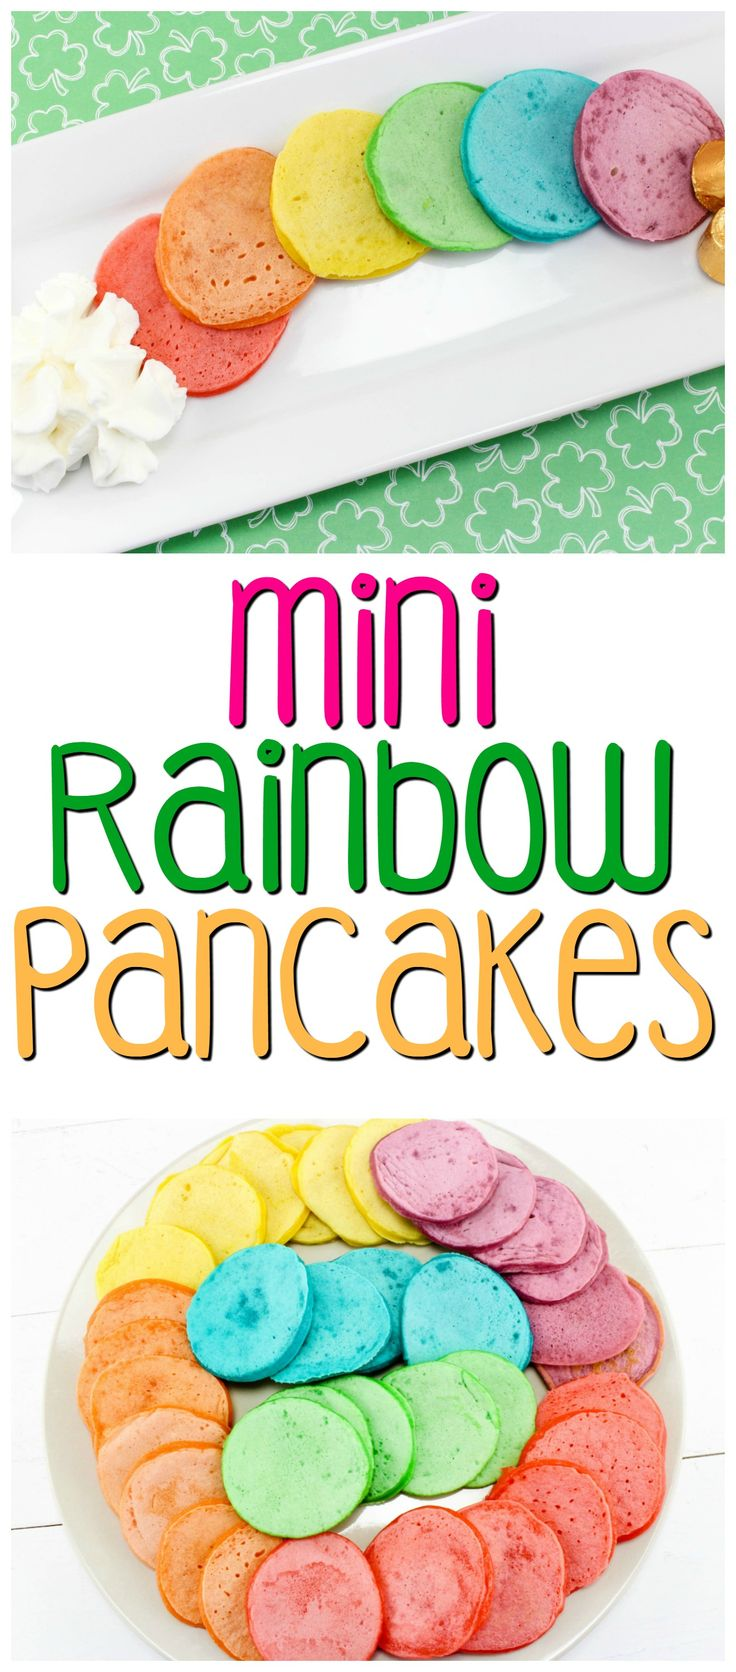 Mini Rainbow Pancakes for St. Patrick's Day - or any day!